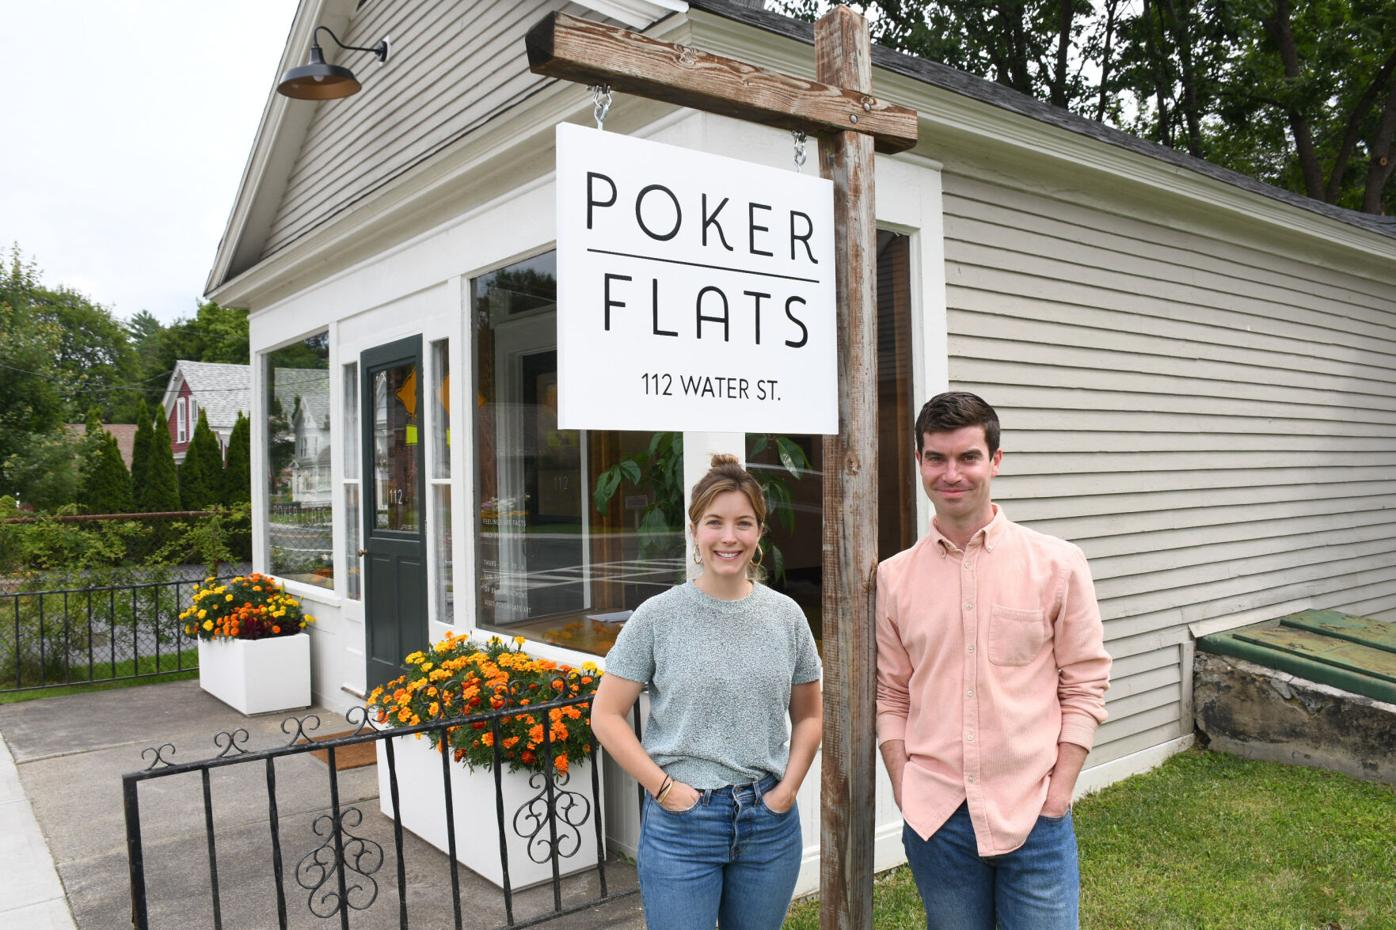 Izzy Lee and Jared Quinton stand in front of the Poker Flats Gallery